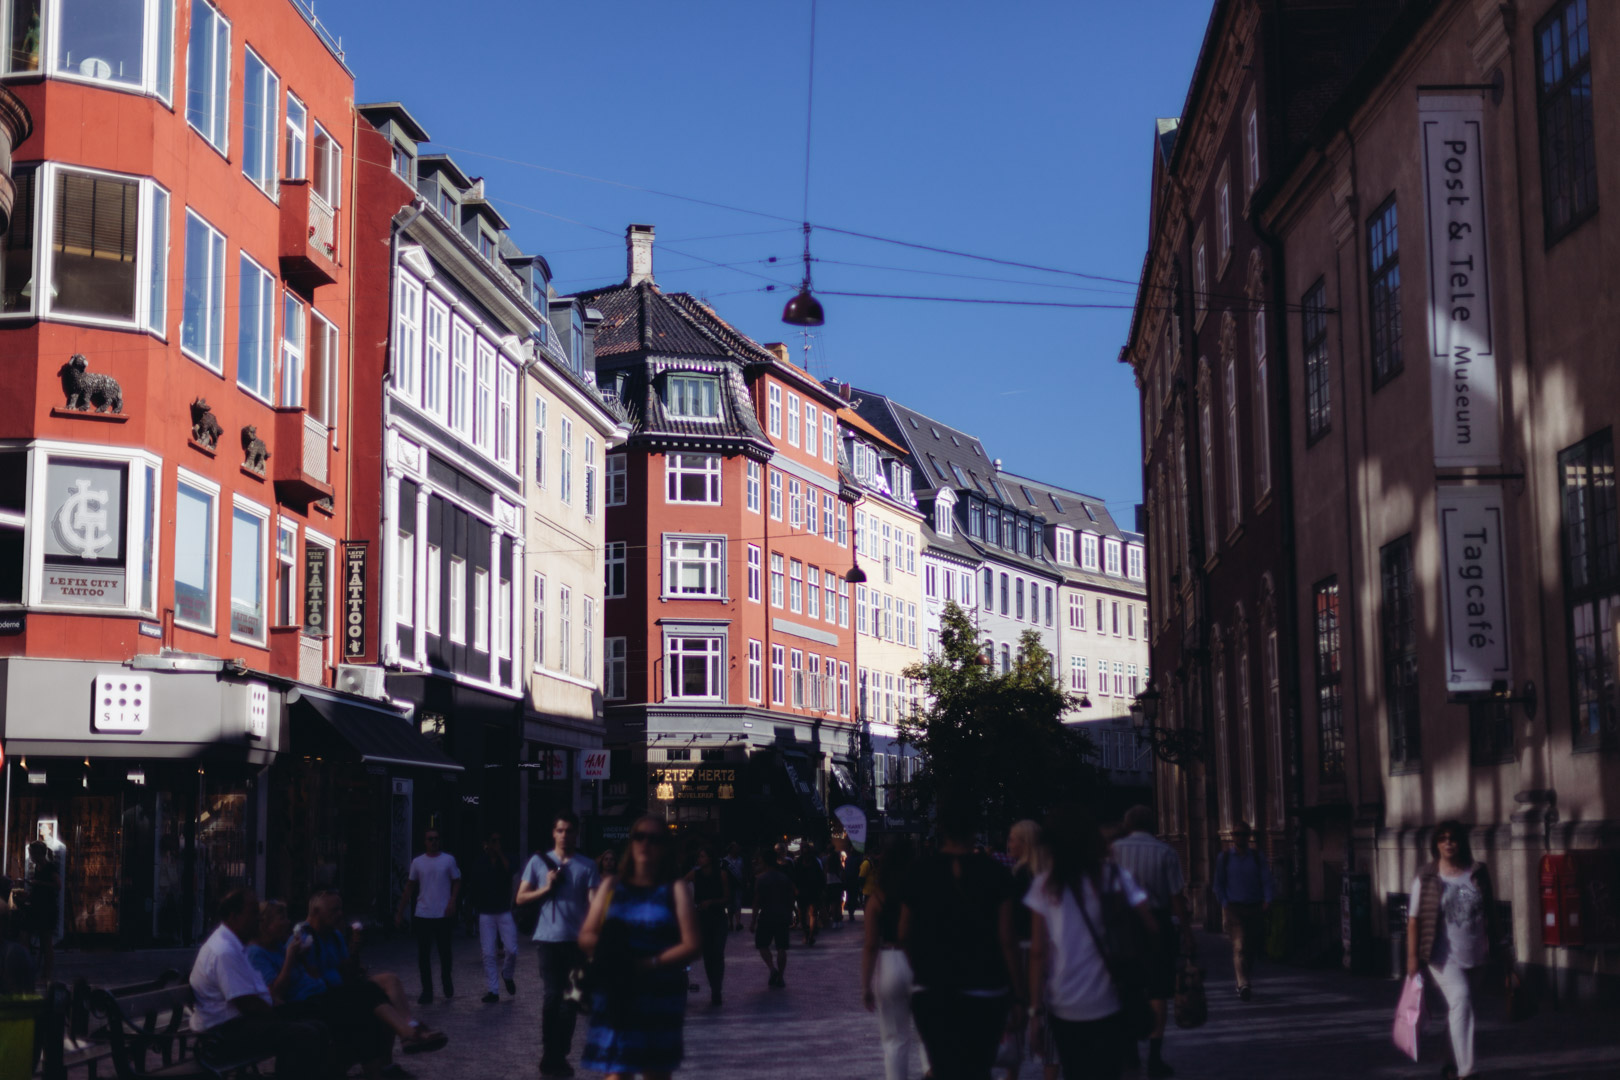 Strøget,  a pedestrian, car free shopping area in Copenhagen, the longest pedestrian shopping streets in Europe at 1.1 km